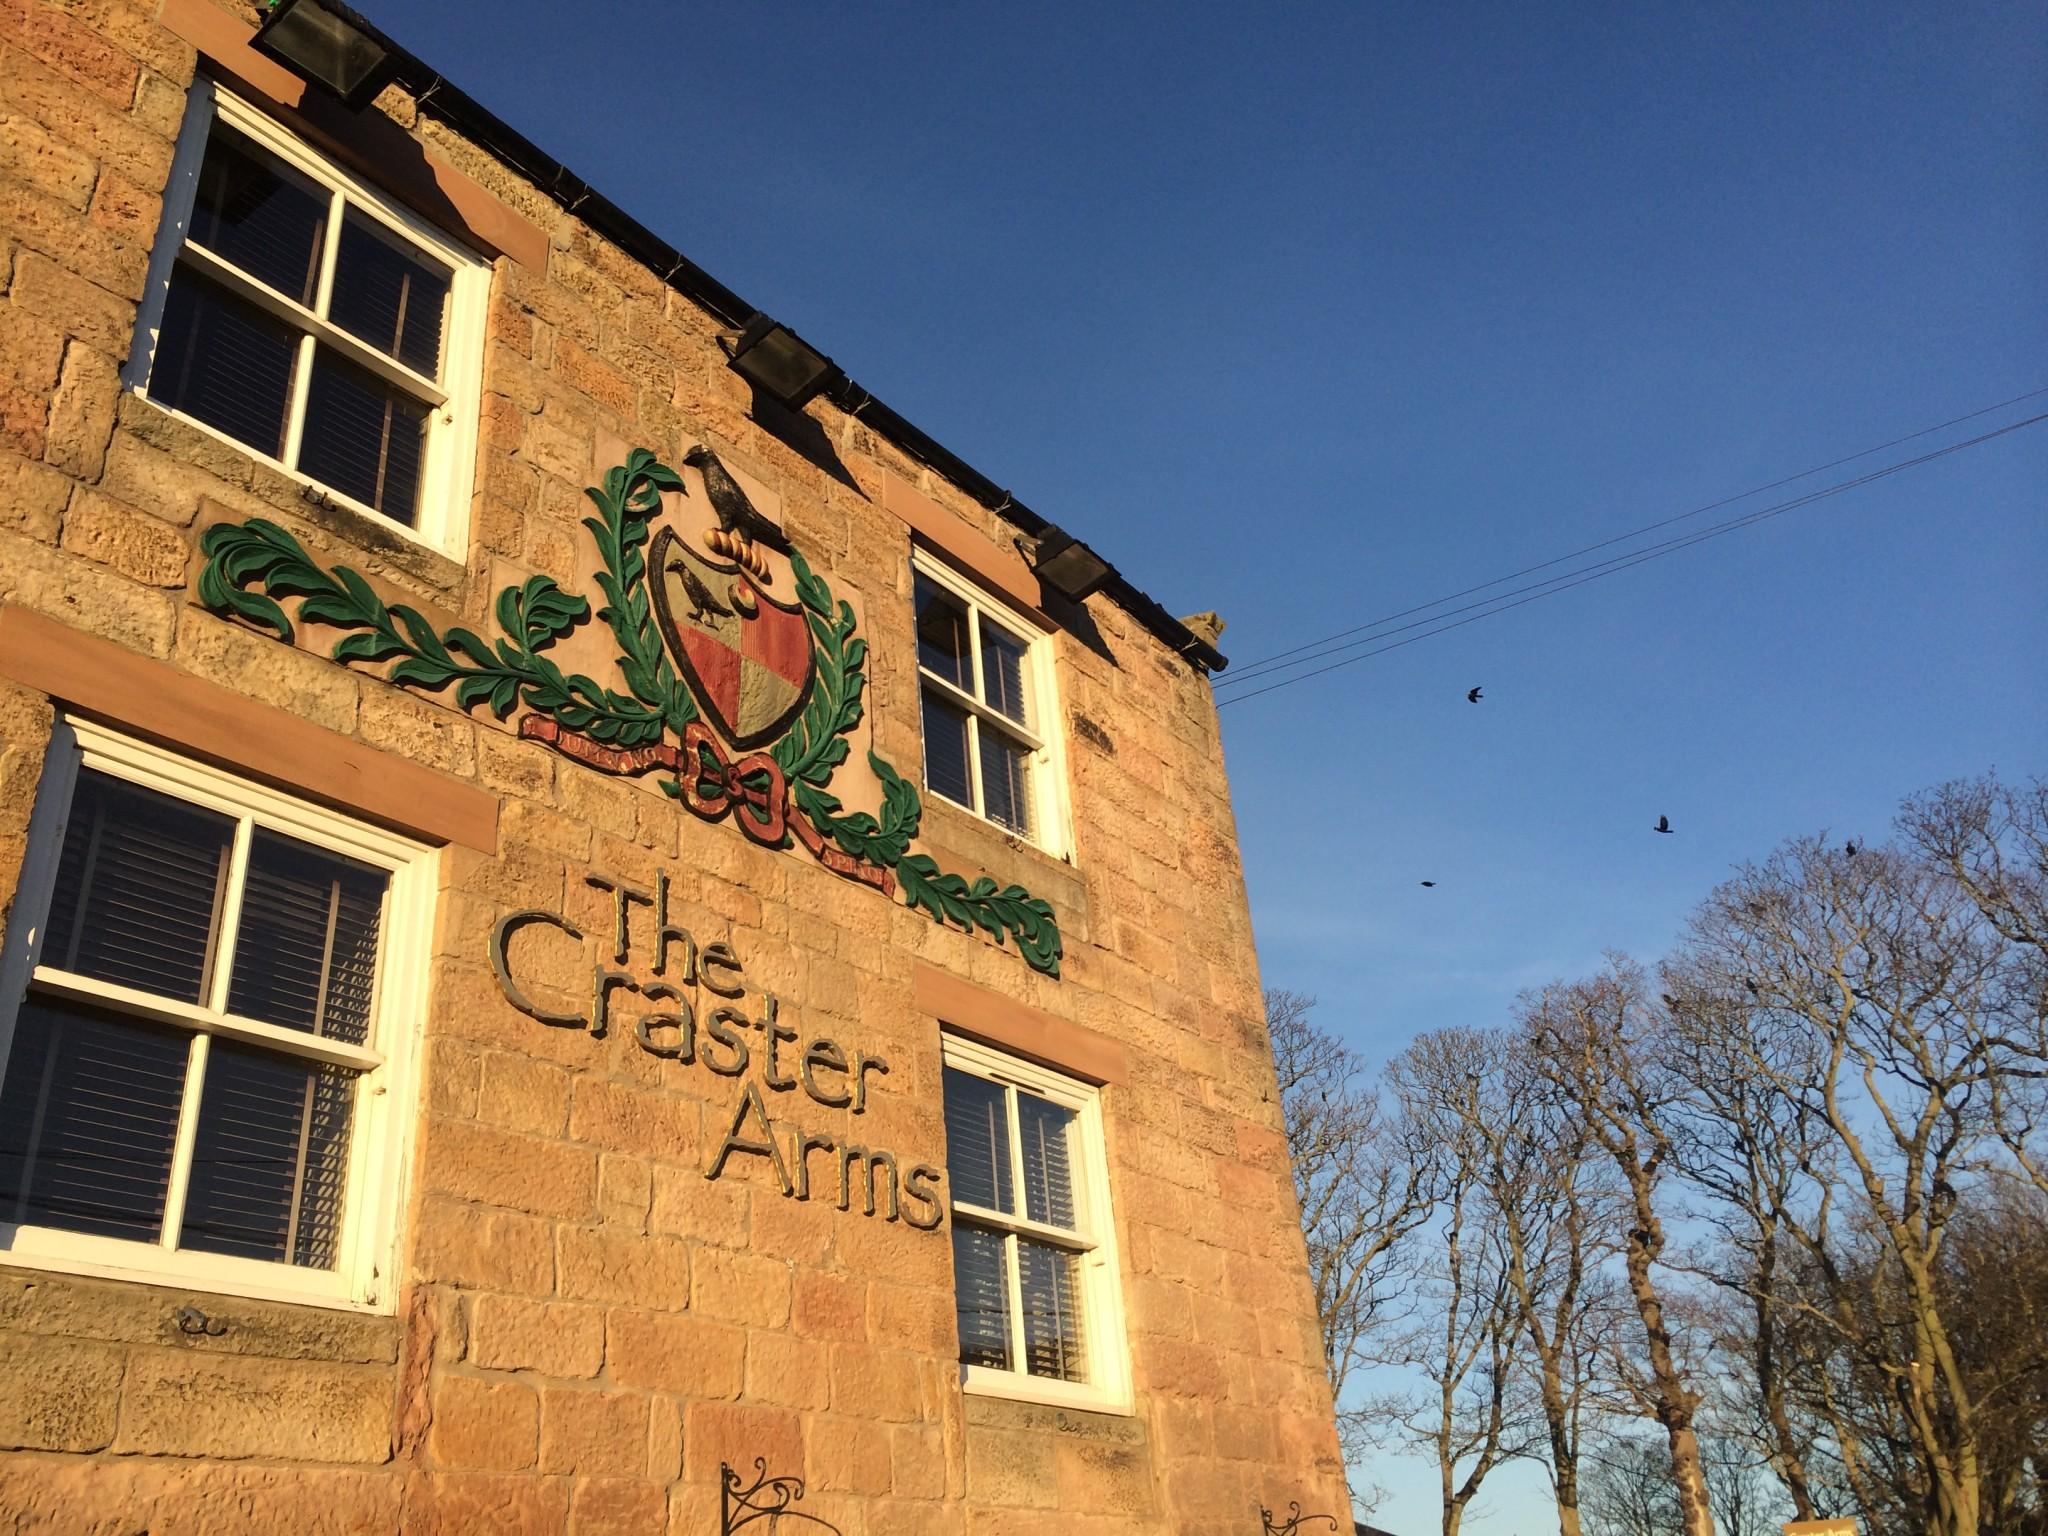 the Craster Arms is just around the corner!